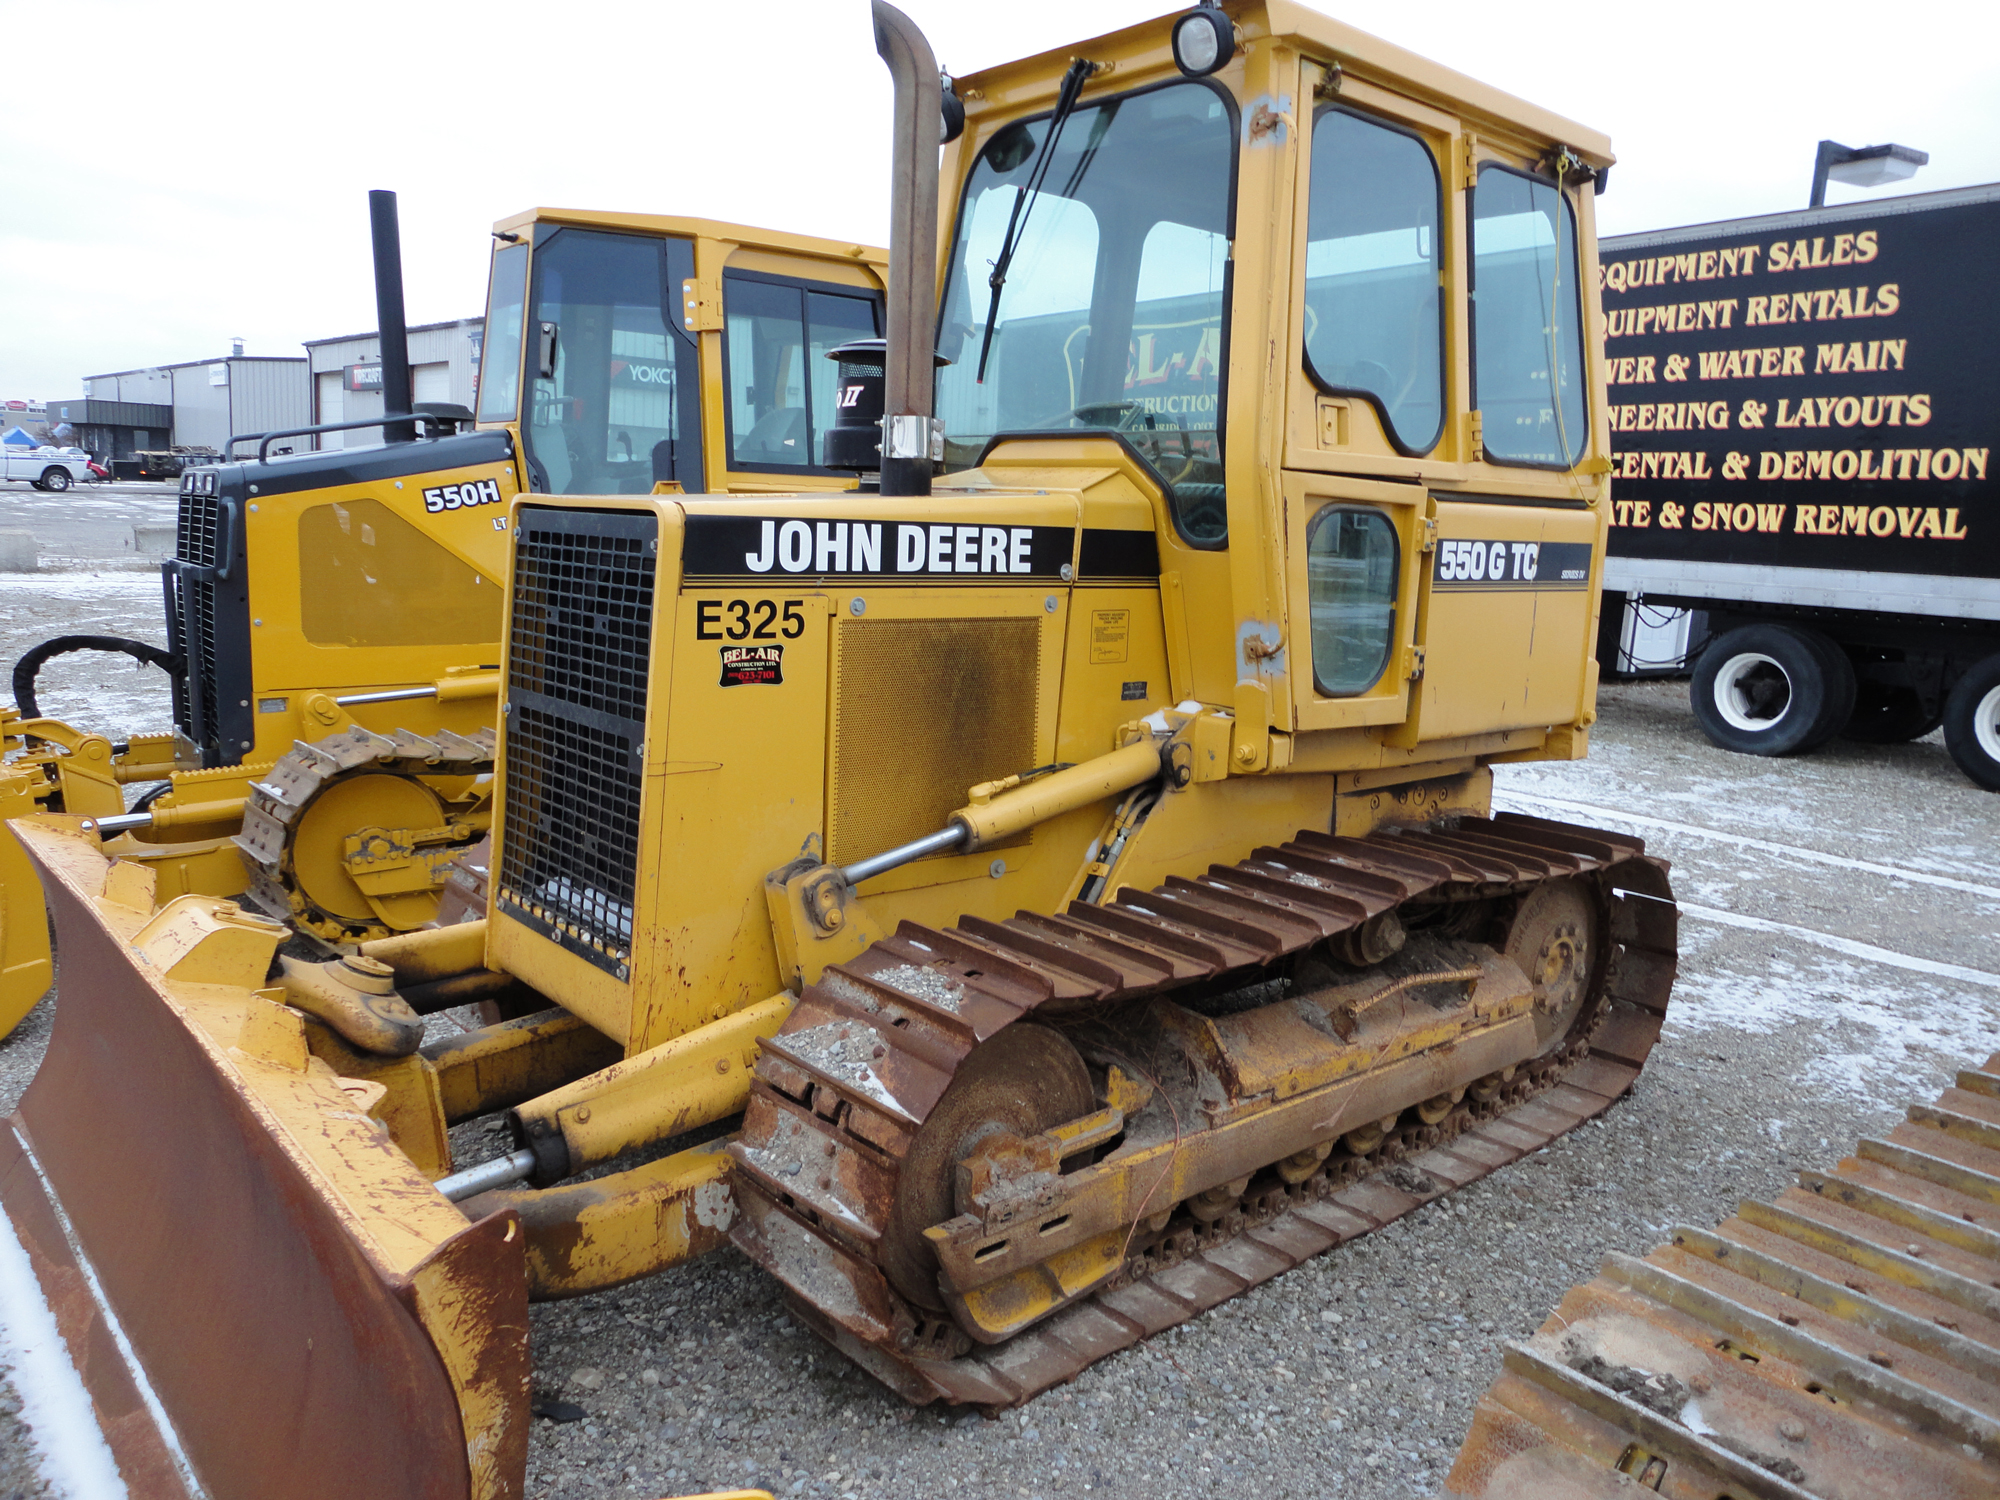 John Deere Dozer 1995 for sale from grading and excavation company Cambridge